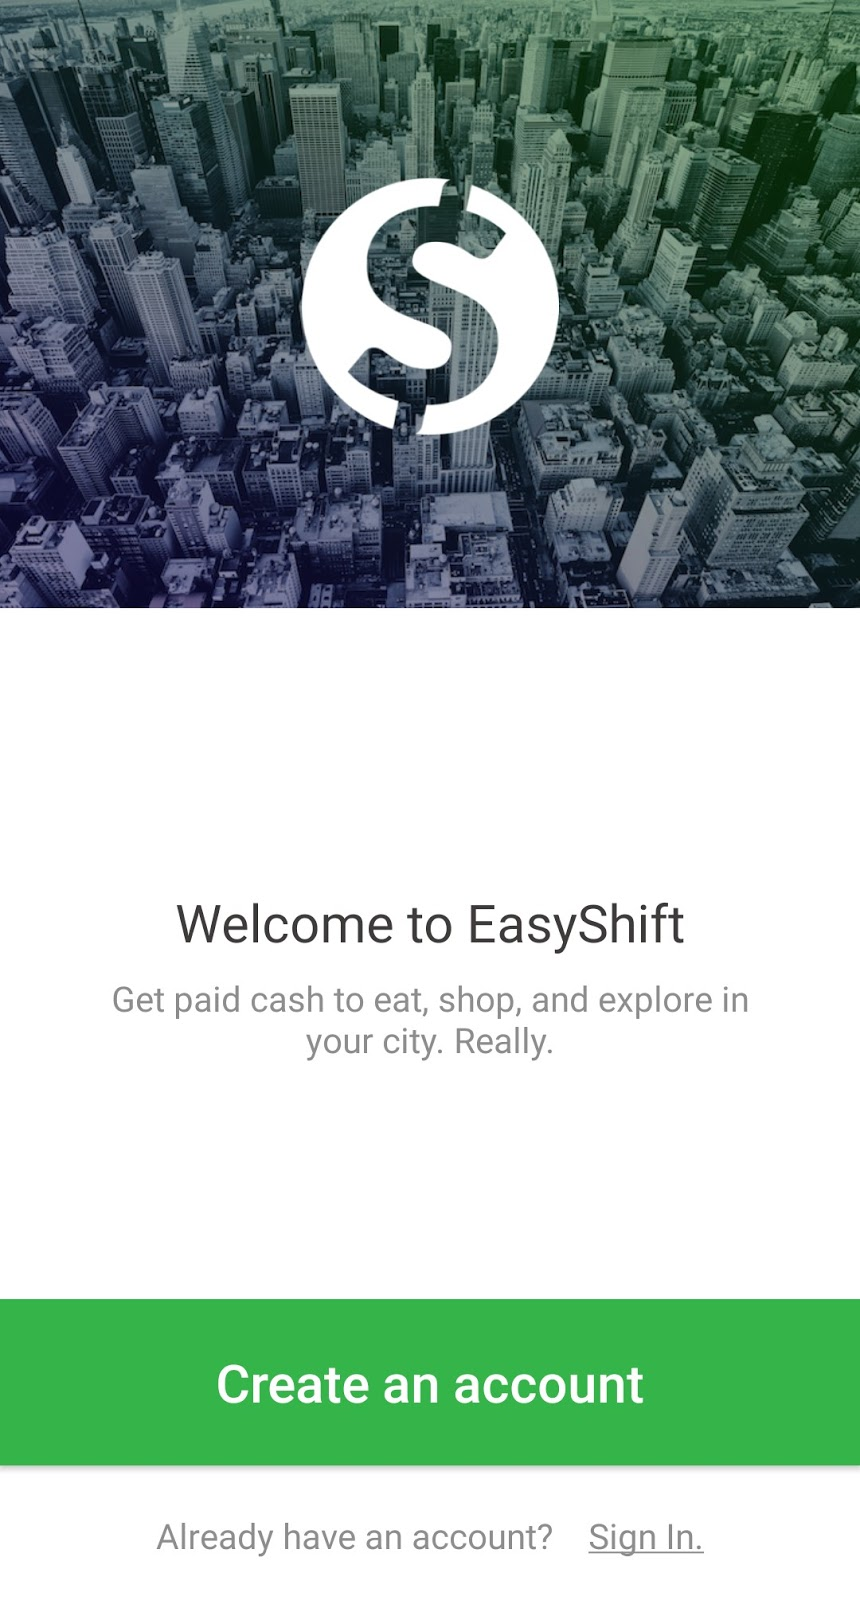 EasyShift create an account page